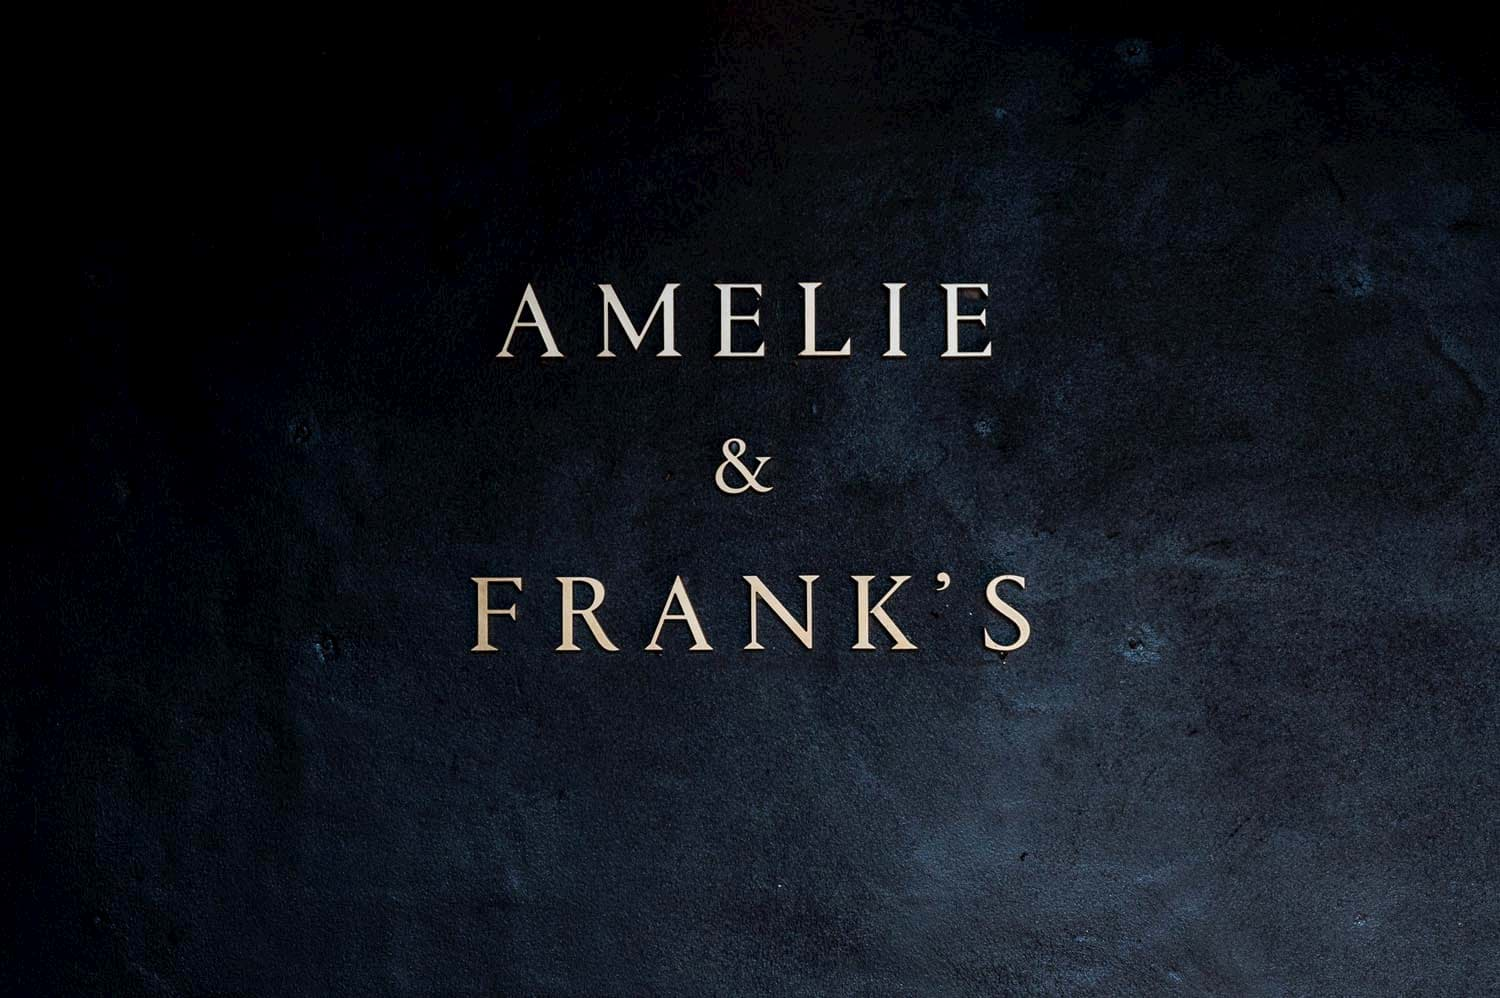 Amelie and Frank's